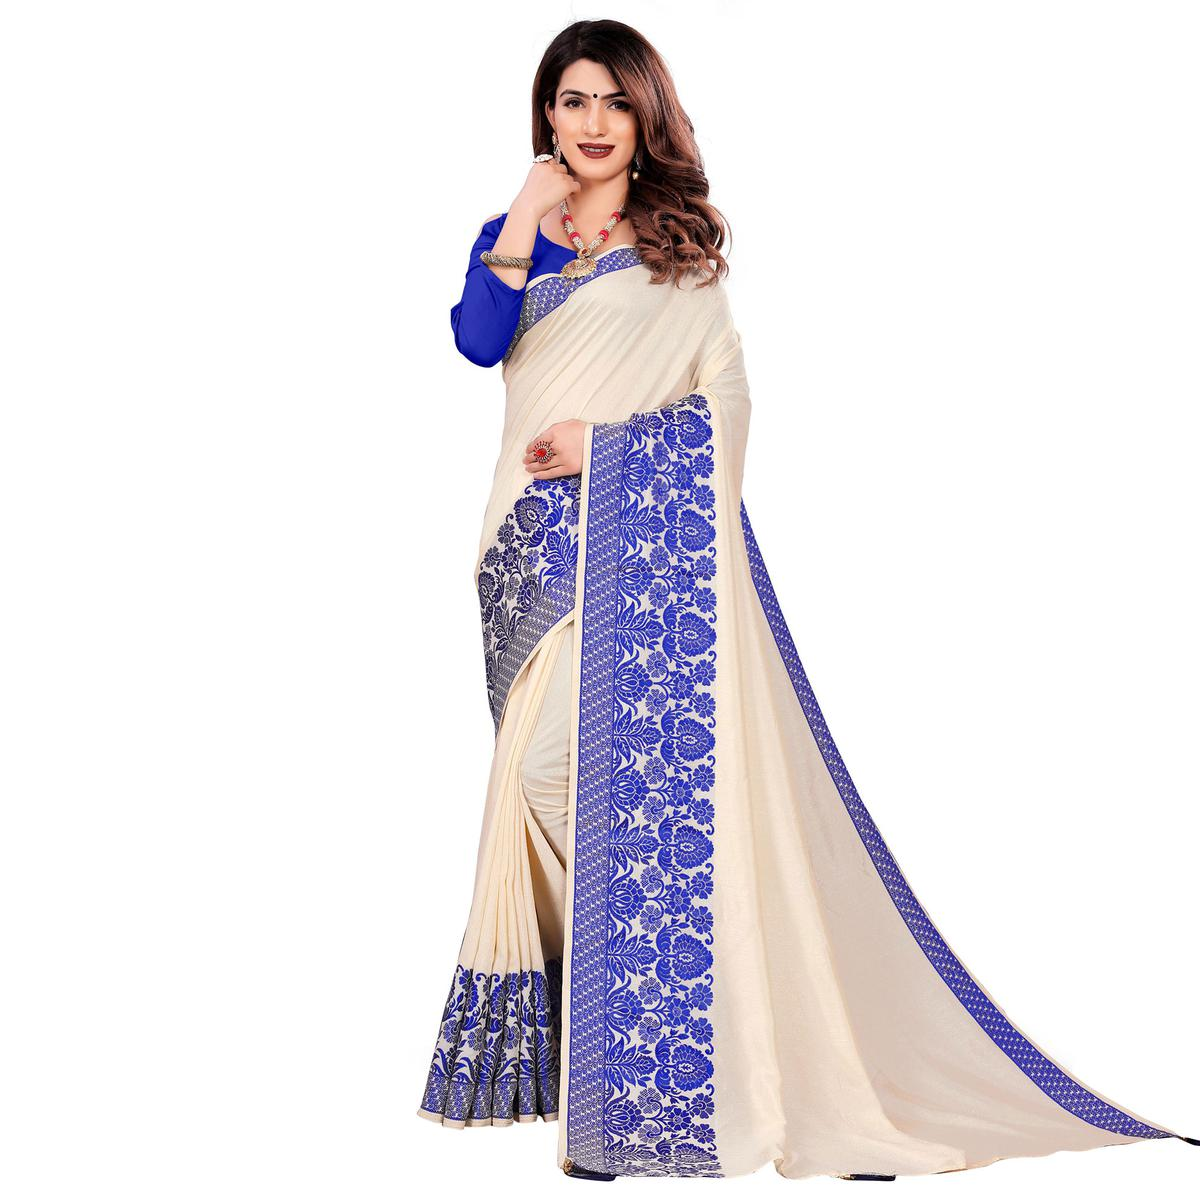 Intricate Cream Colored Festive Wear Woven Art Silk Saree With Tassels